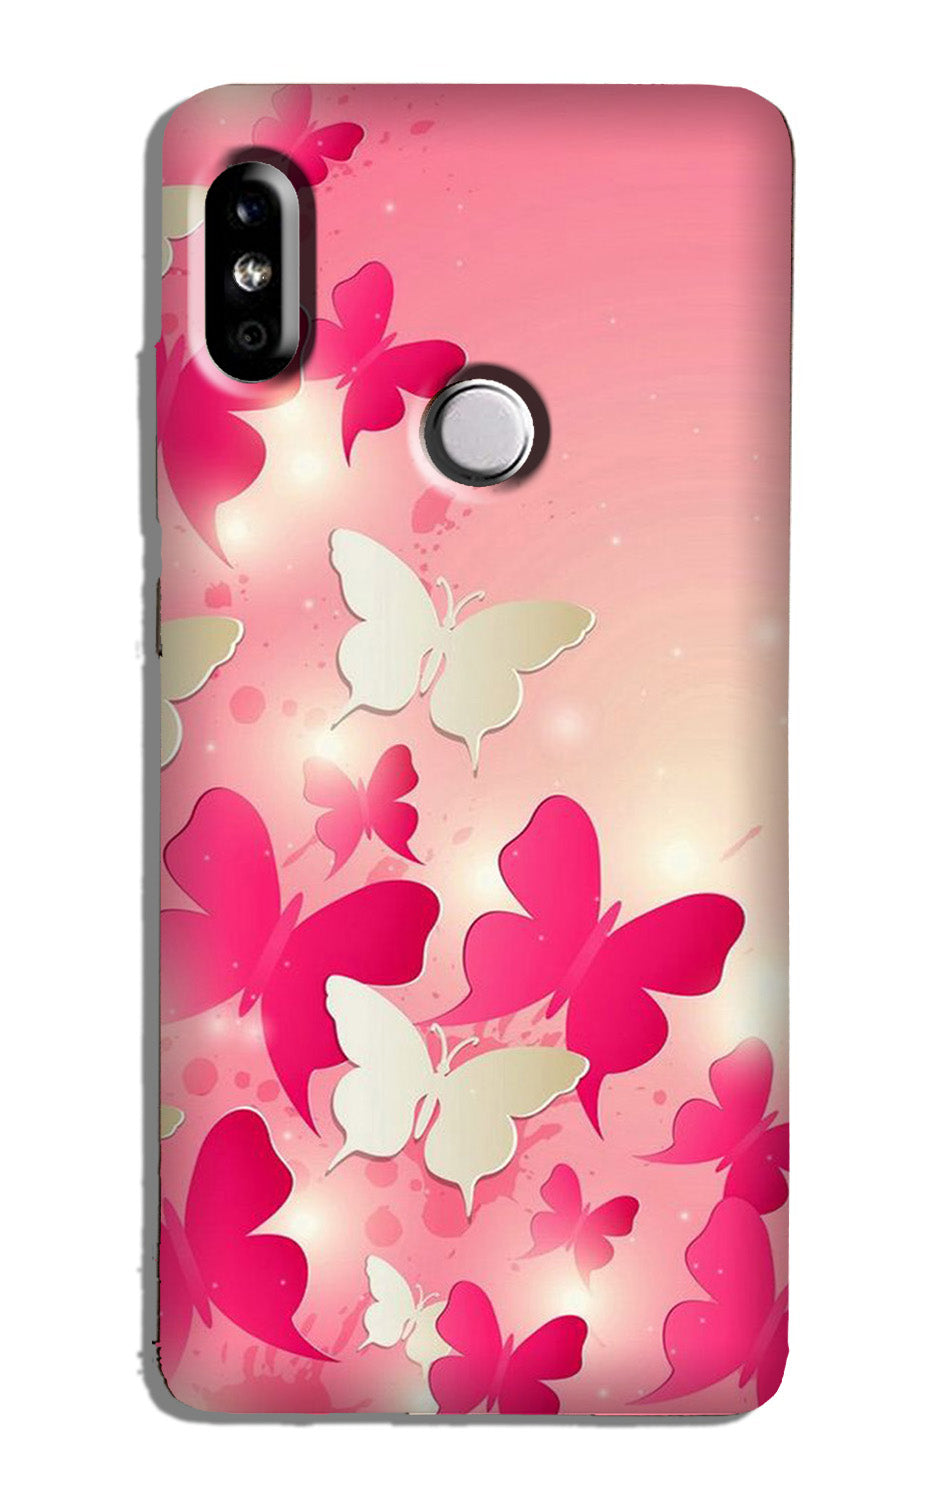 White Pick Butterflies Case for Redmi Note 6 Pro